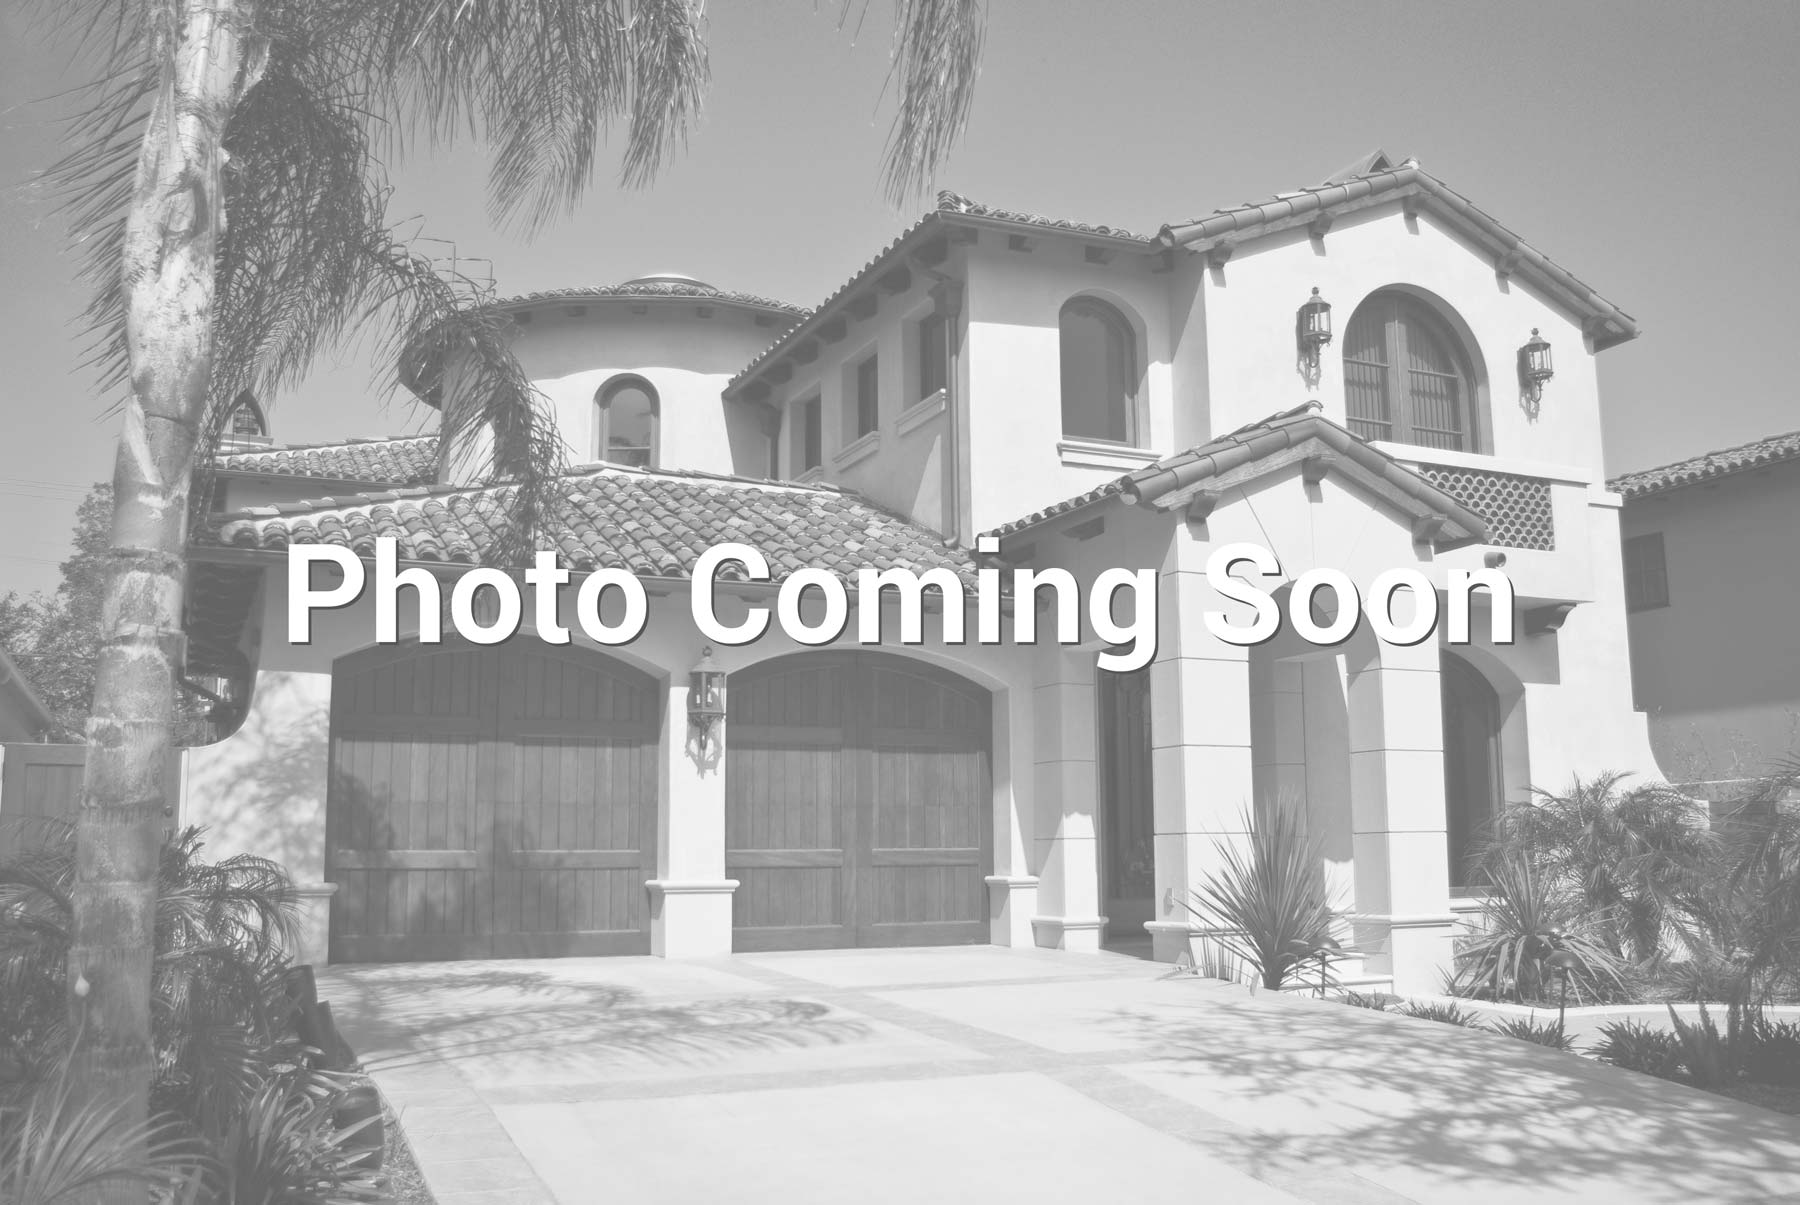 $885,000 - 6Br/5Ba - Home for Sale in Desert Ridge Superblock 11 Parcel 4, Phoenix